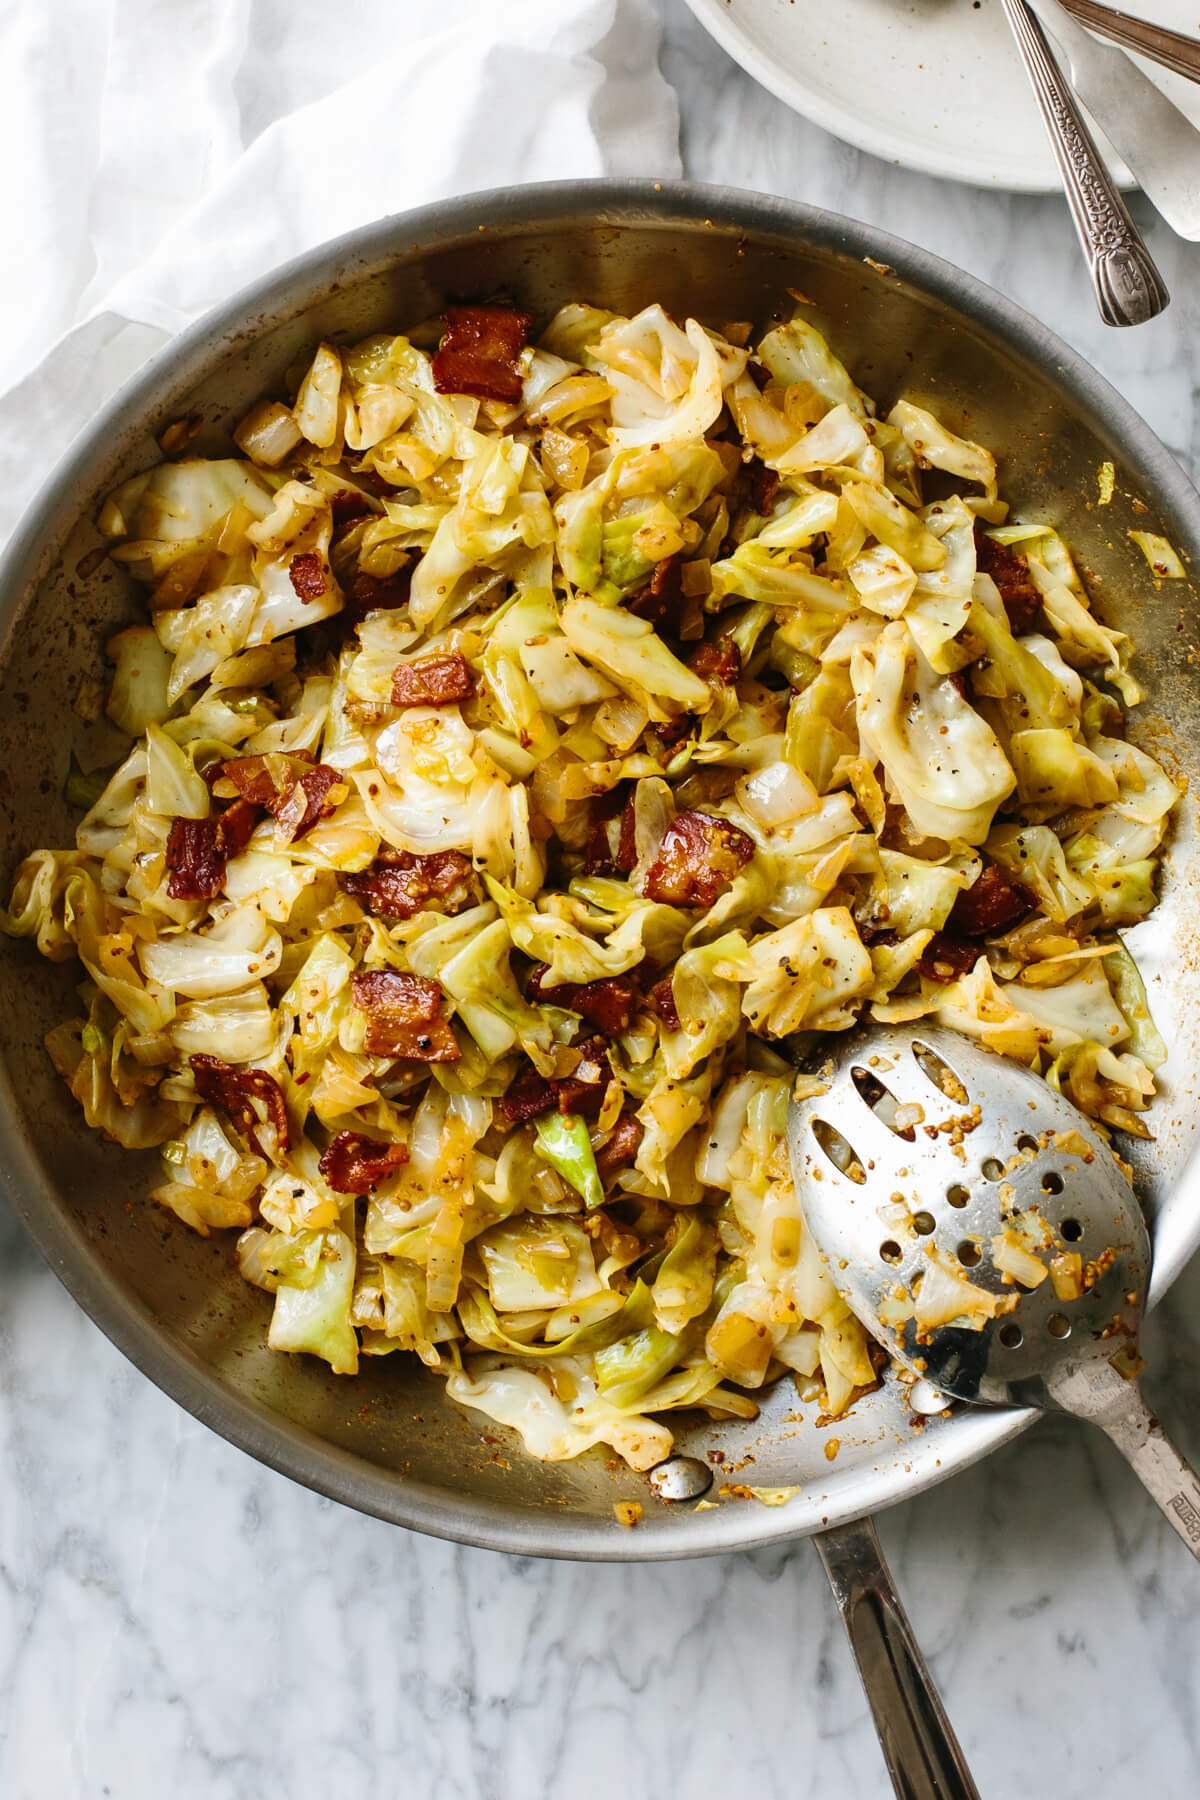 Fried cabbage in a pan with a serving spoon on a table.